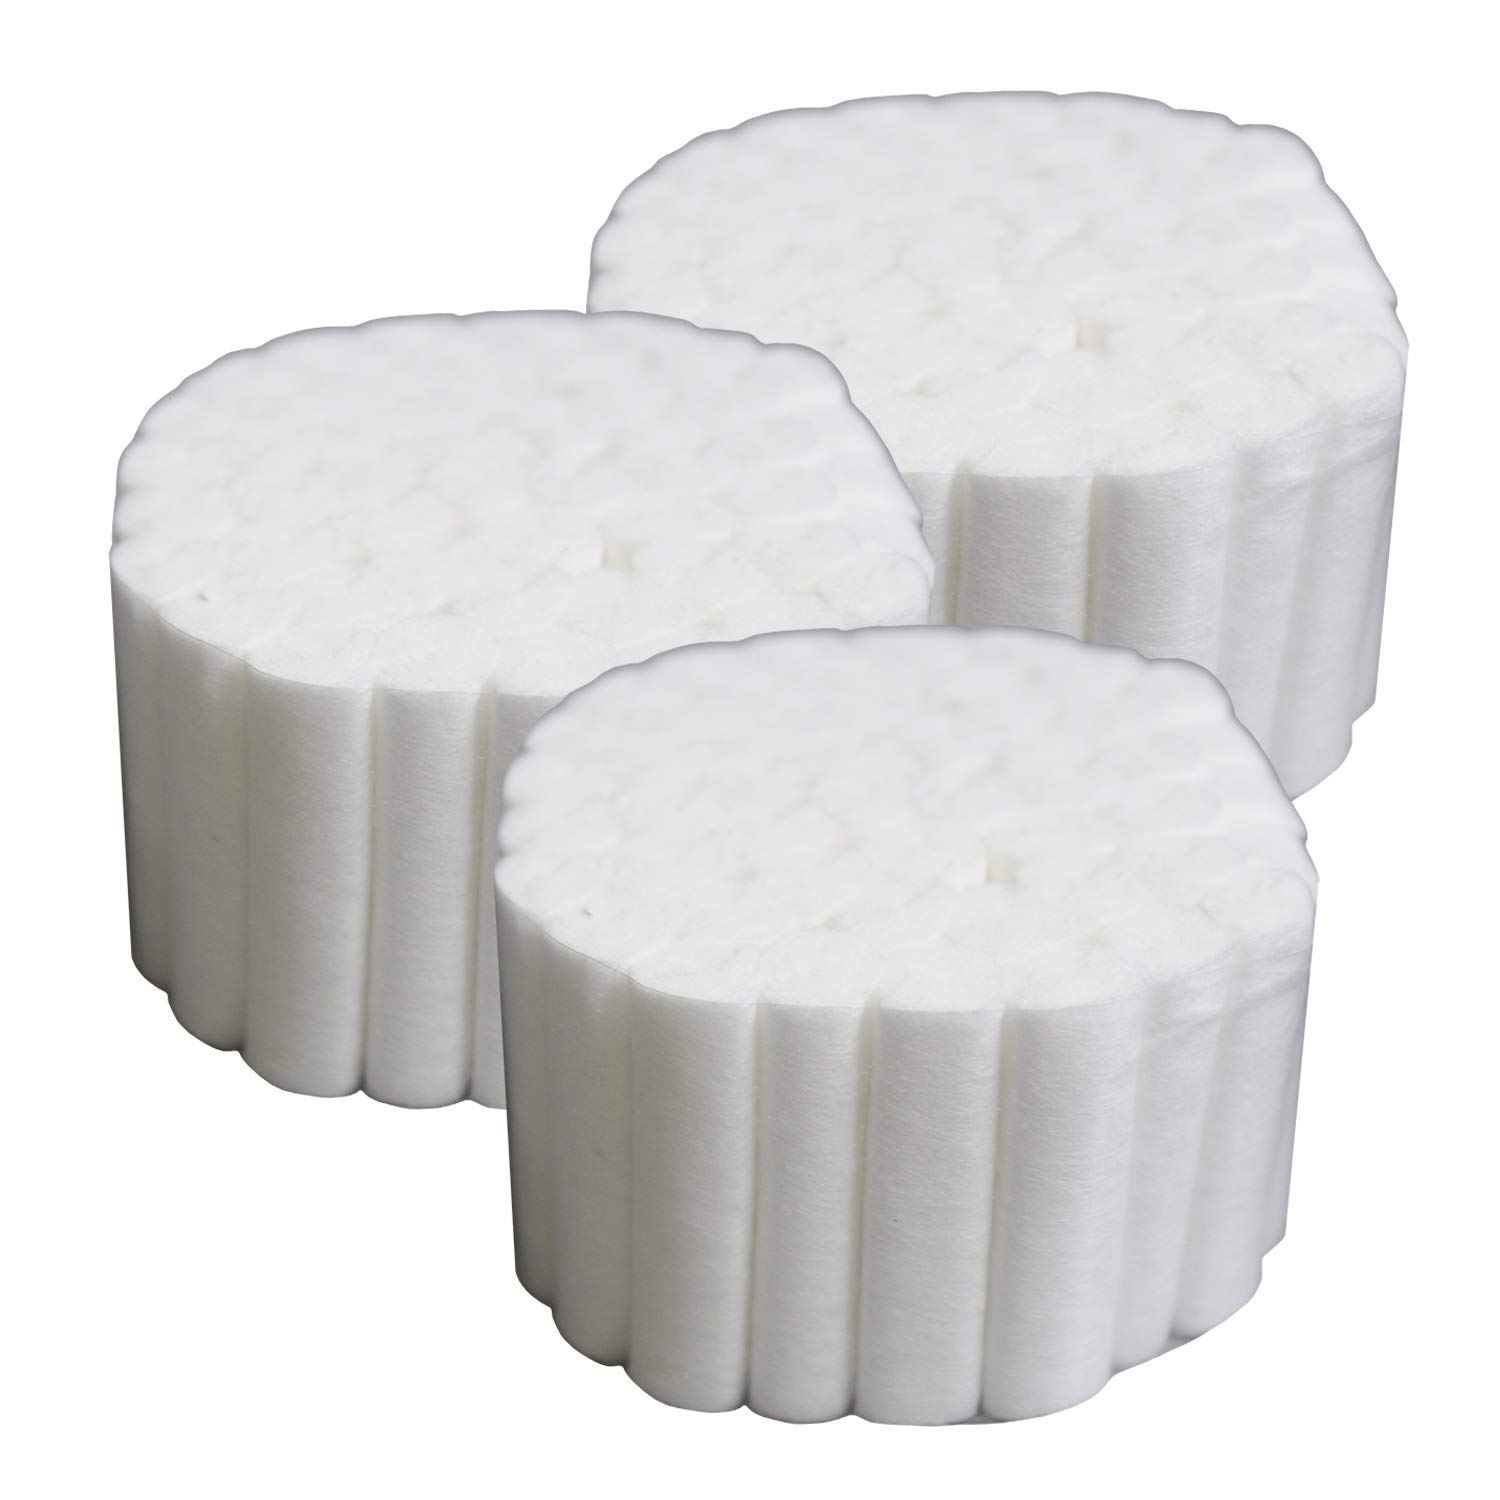 Dental Cotton Rolls #2 Medium - 1.5'' Non Sterile 100% High Absorbent Cotton, Pack of 2,000 by Vivid